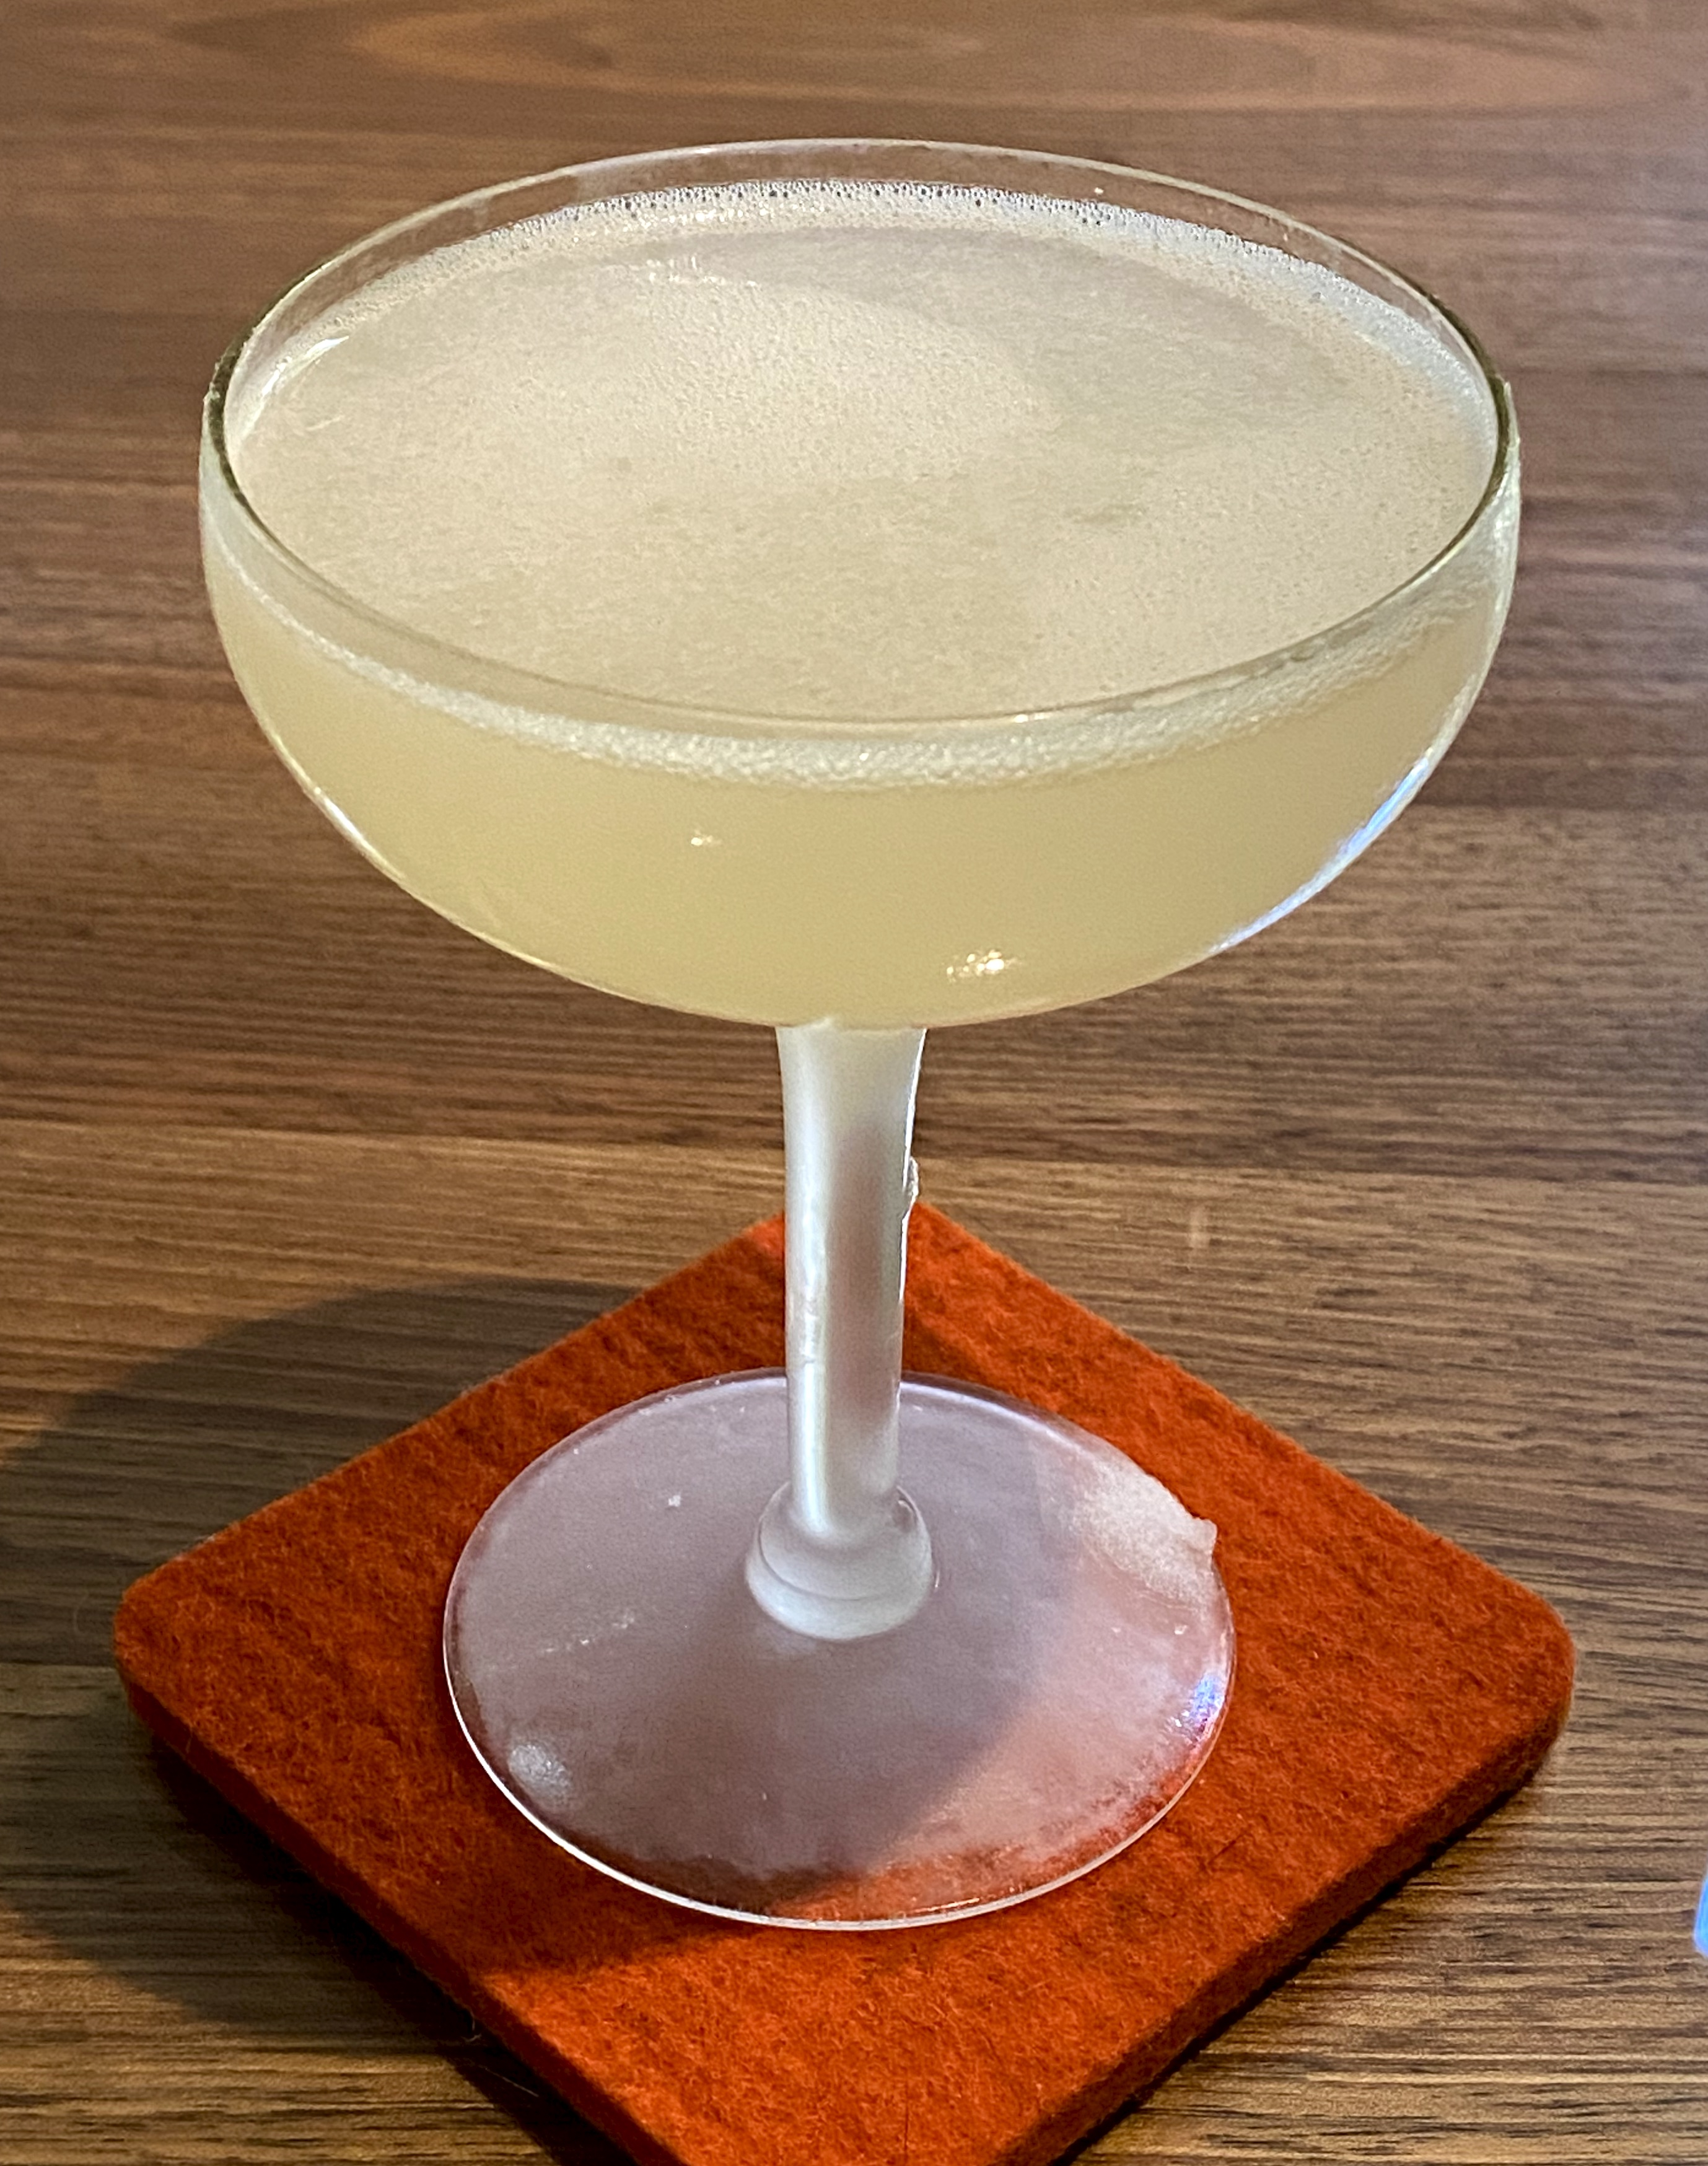 An example of the Mountain Daisy, the mixed drink (daisy) featuring Salers Gentian Apéritif, Cocchi Americano Bianco, and lime juice; photo by Martin Doudoroff